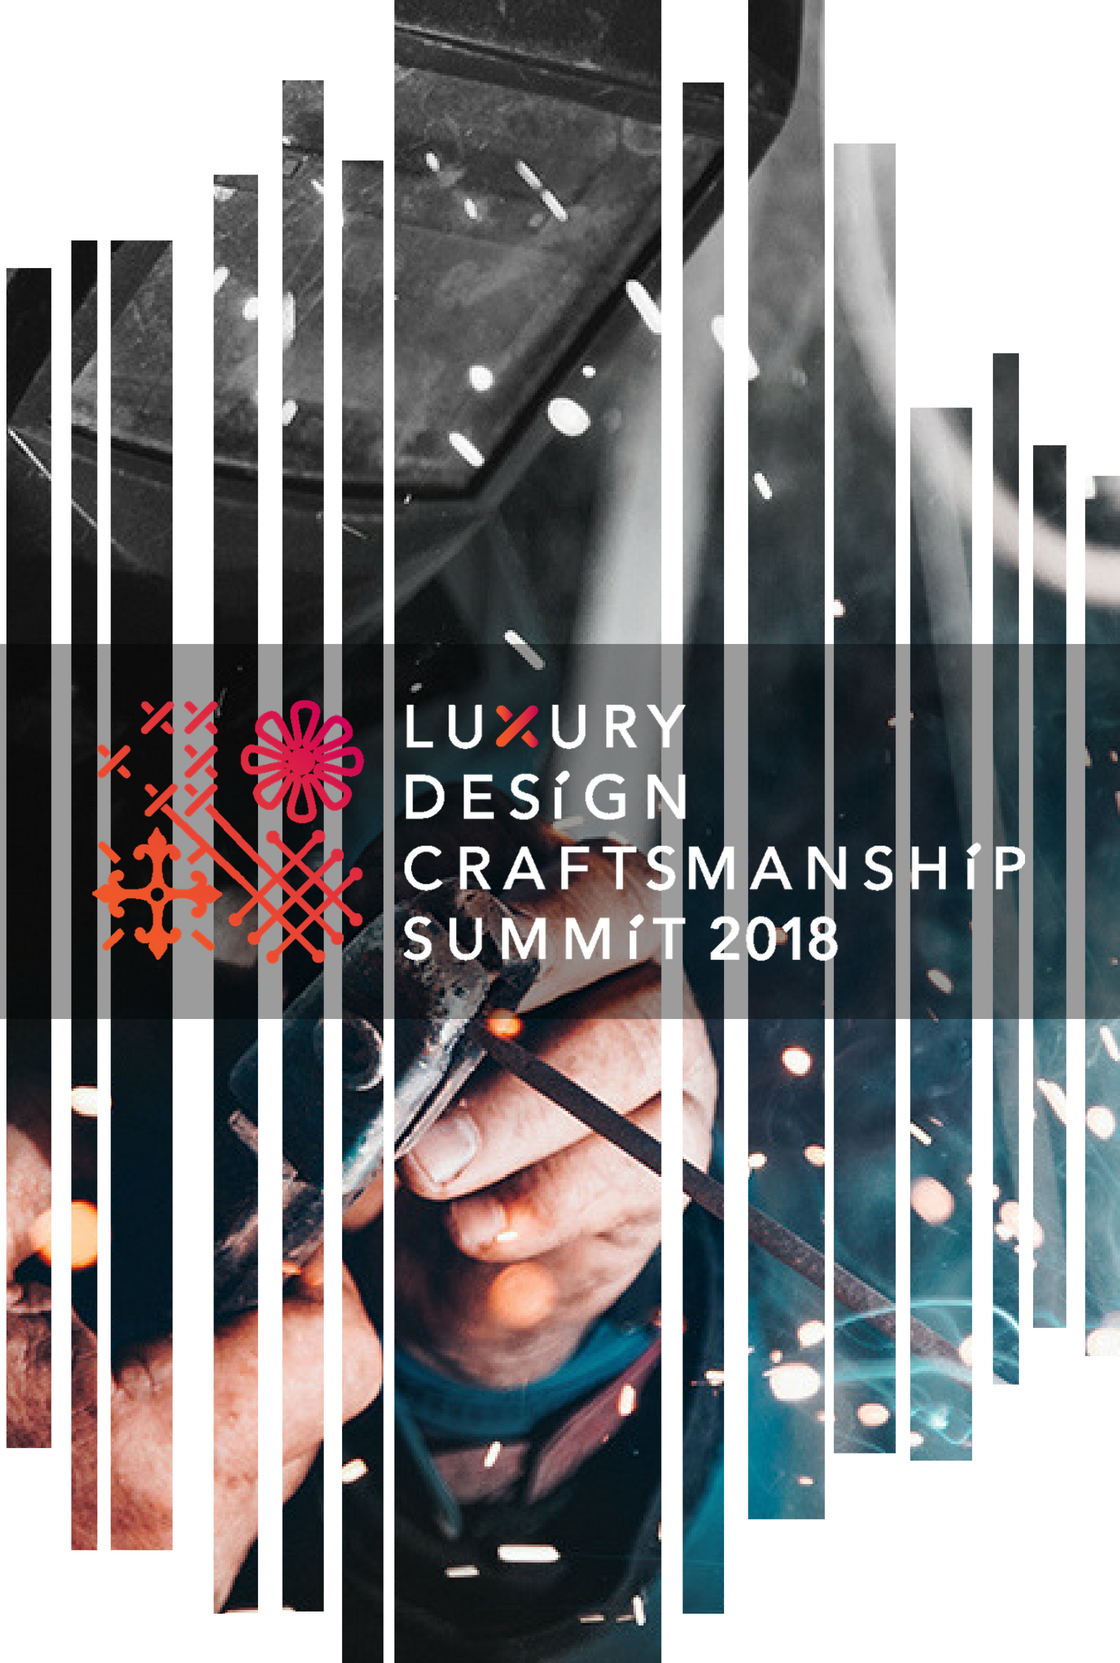 Do You Want To Know The Speakers And The Arts Involved In The Luxury Summit?